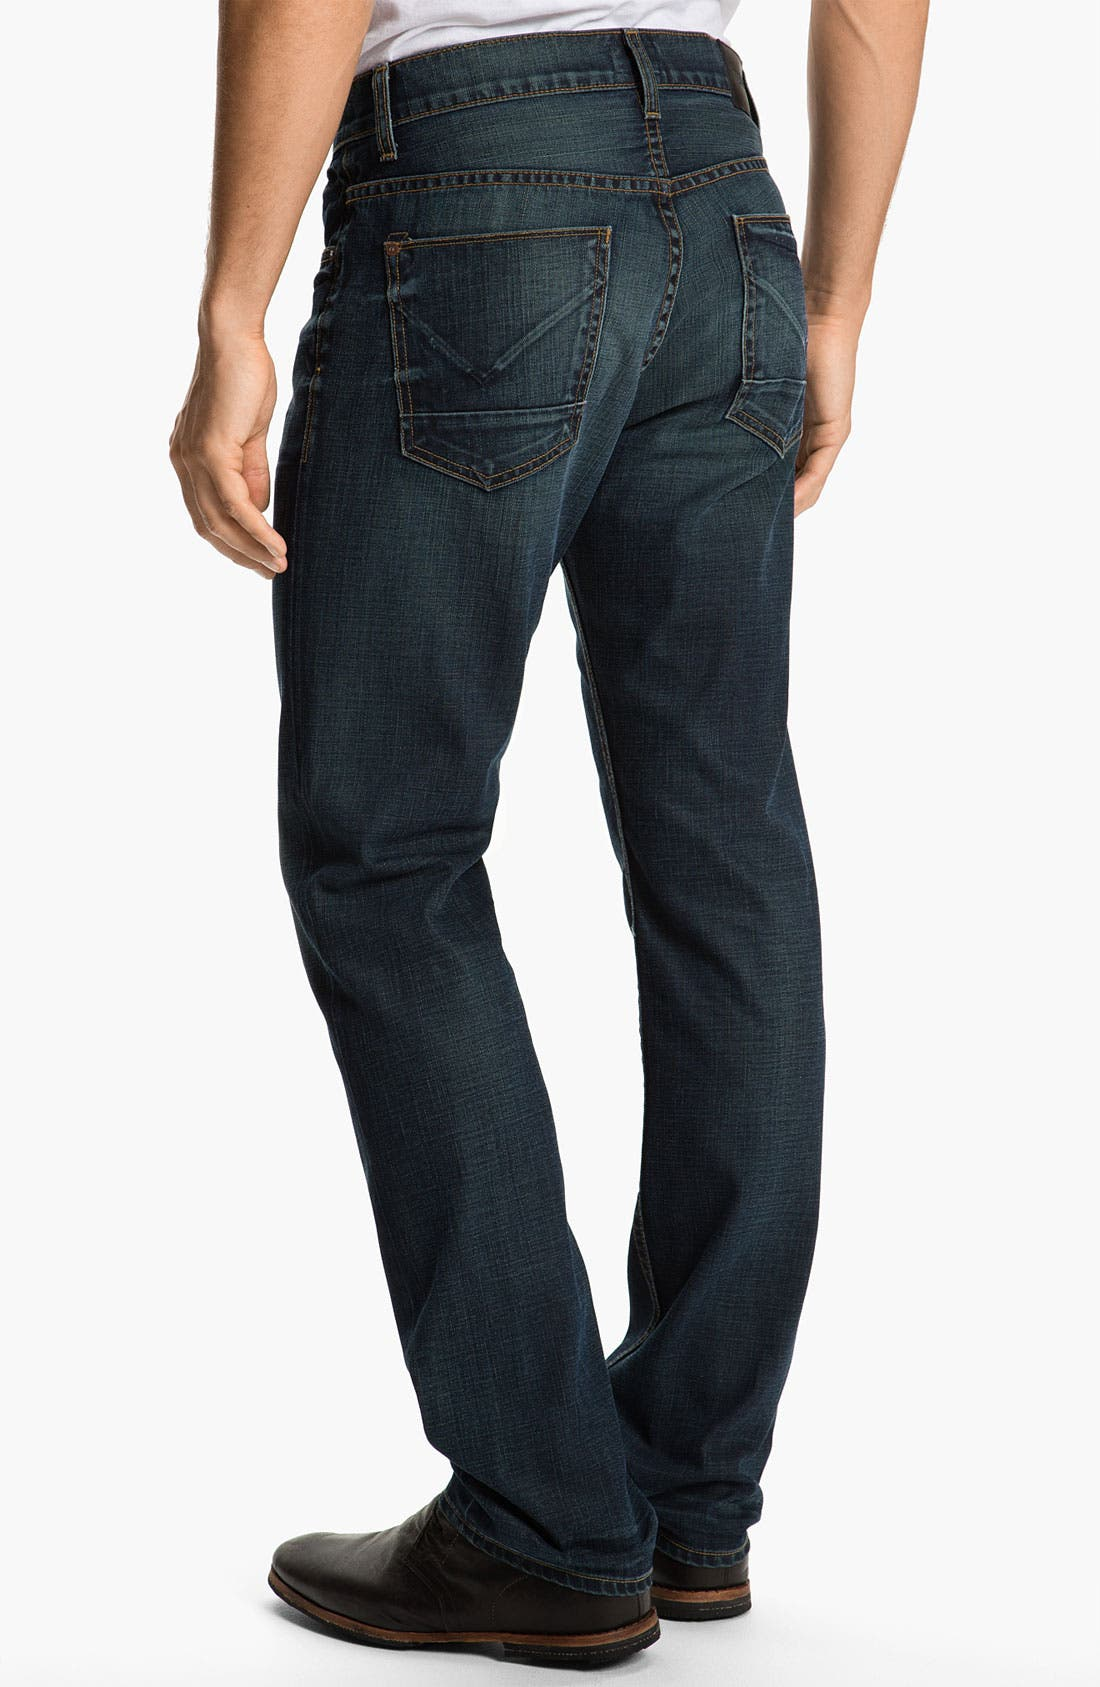 Alternate Image 1 Selected - Hudson Jeans 'Dandy' Slouchy Straight Leg Jeans (Shovel)